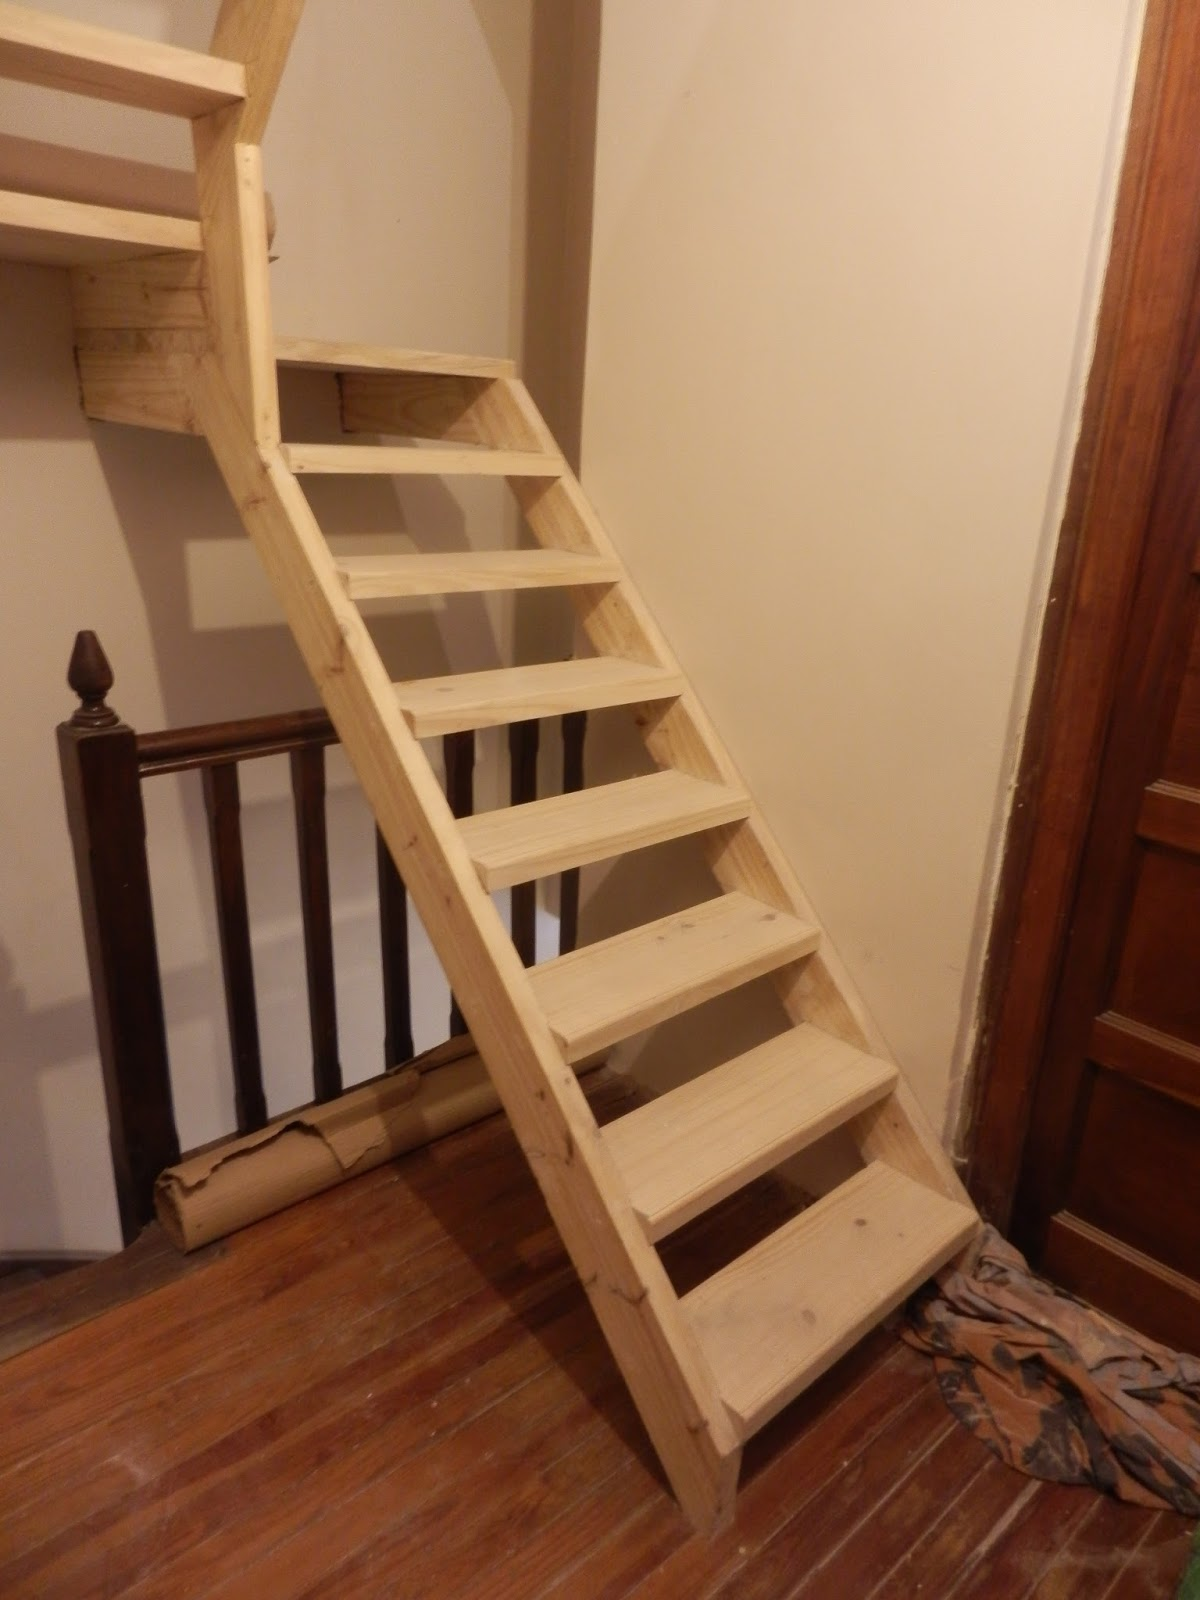 Escaleras para altillos good escalera plegable altillo - Escaleras de techo ...